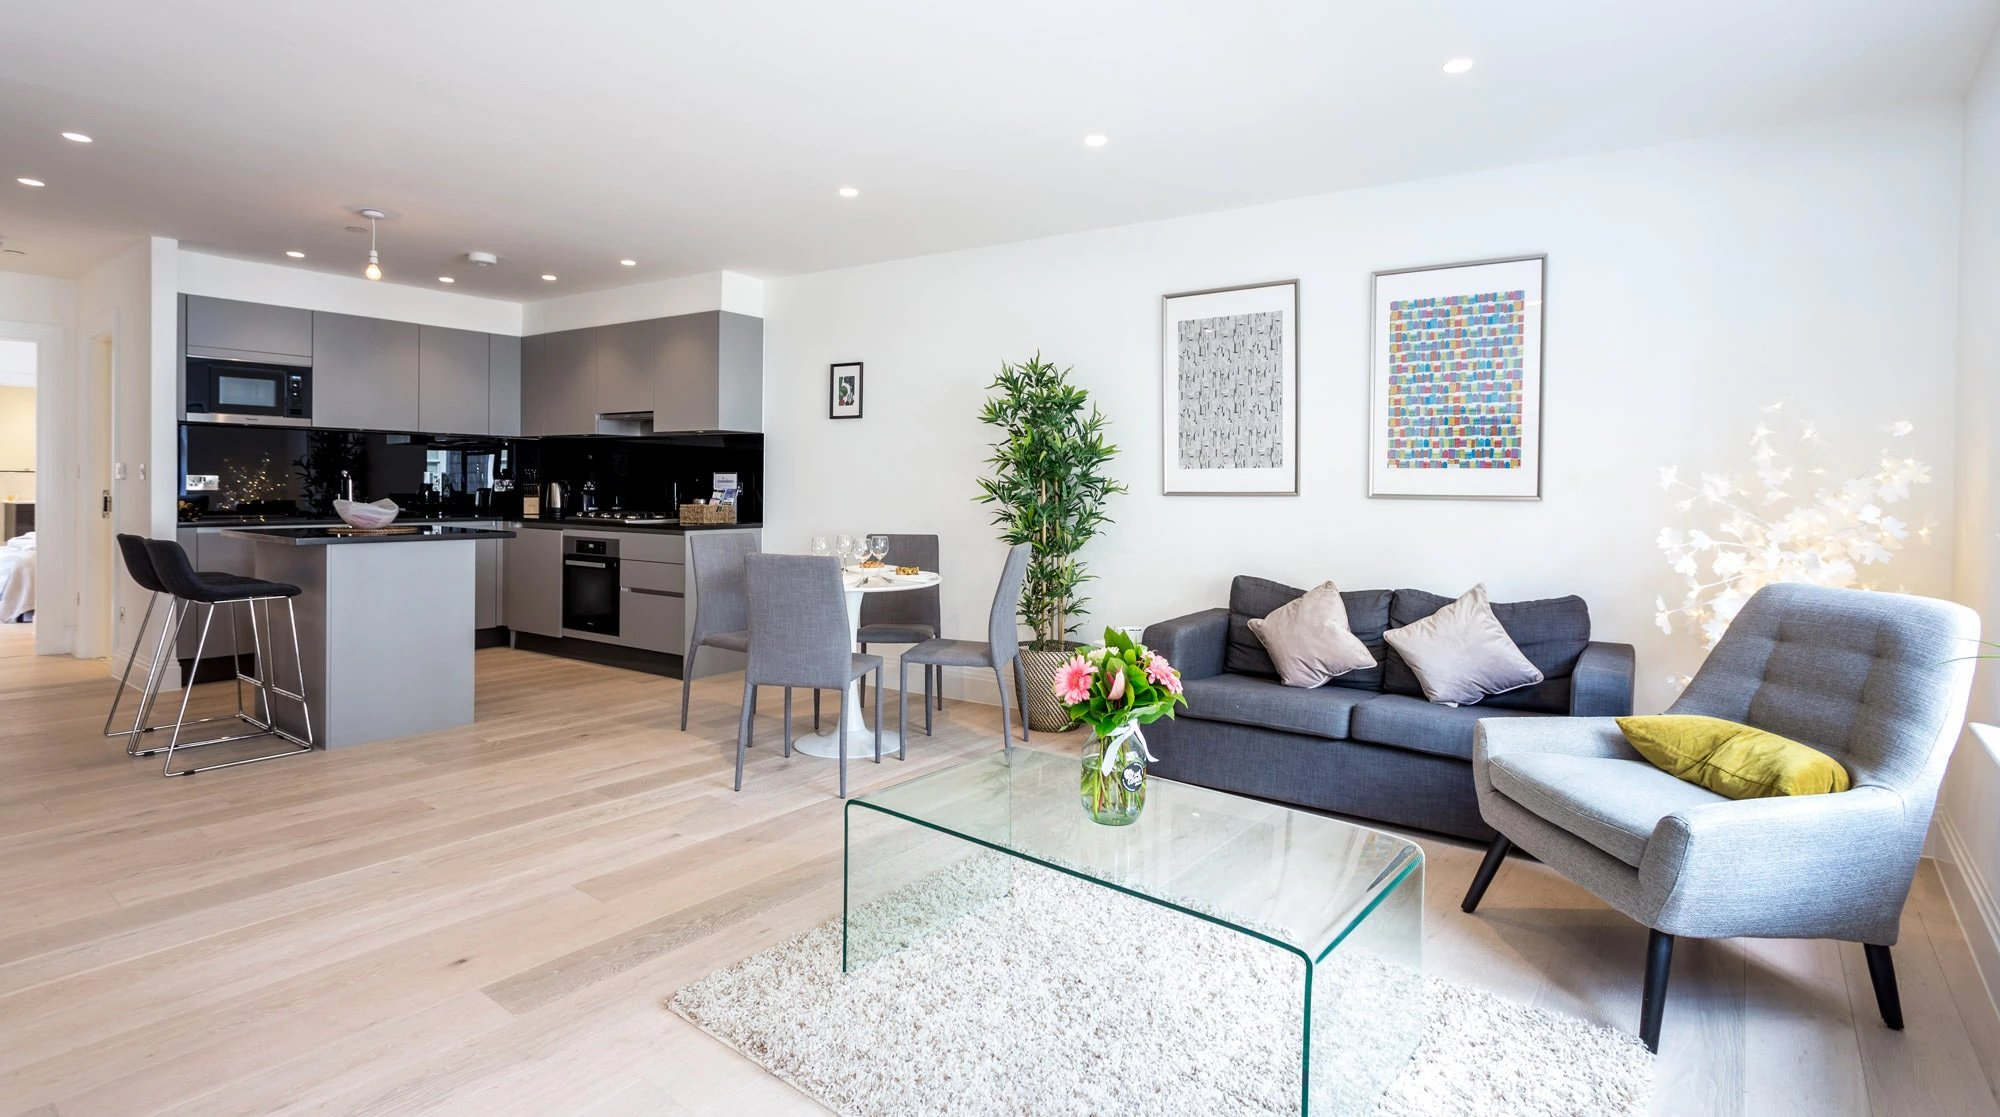 Luxury Oxford Circus Serviced Apartments Central London Corporate Accommodation Fitzrovia Urban Stay 71